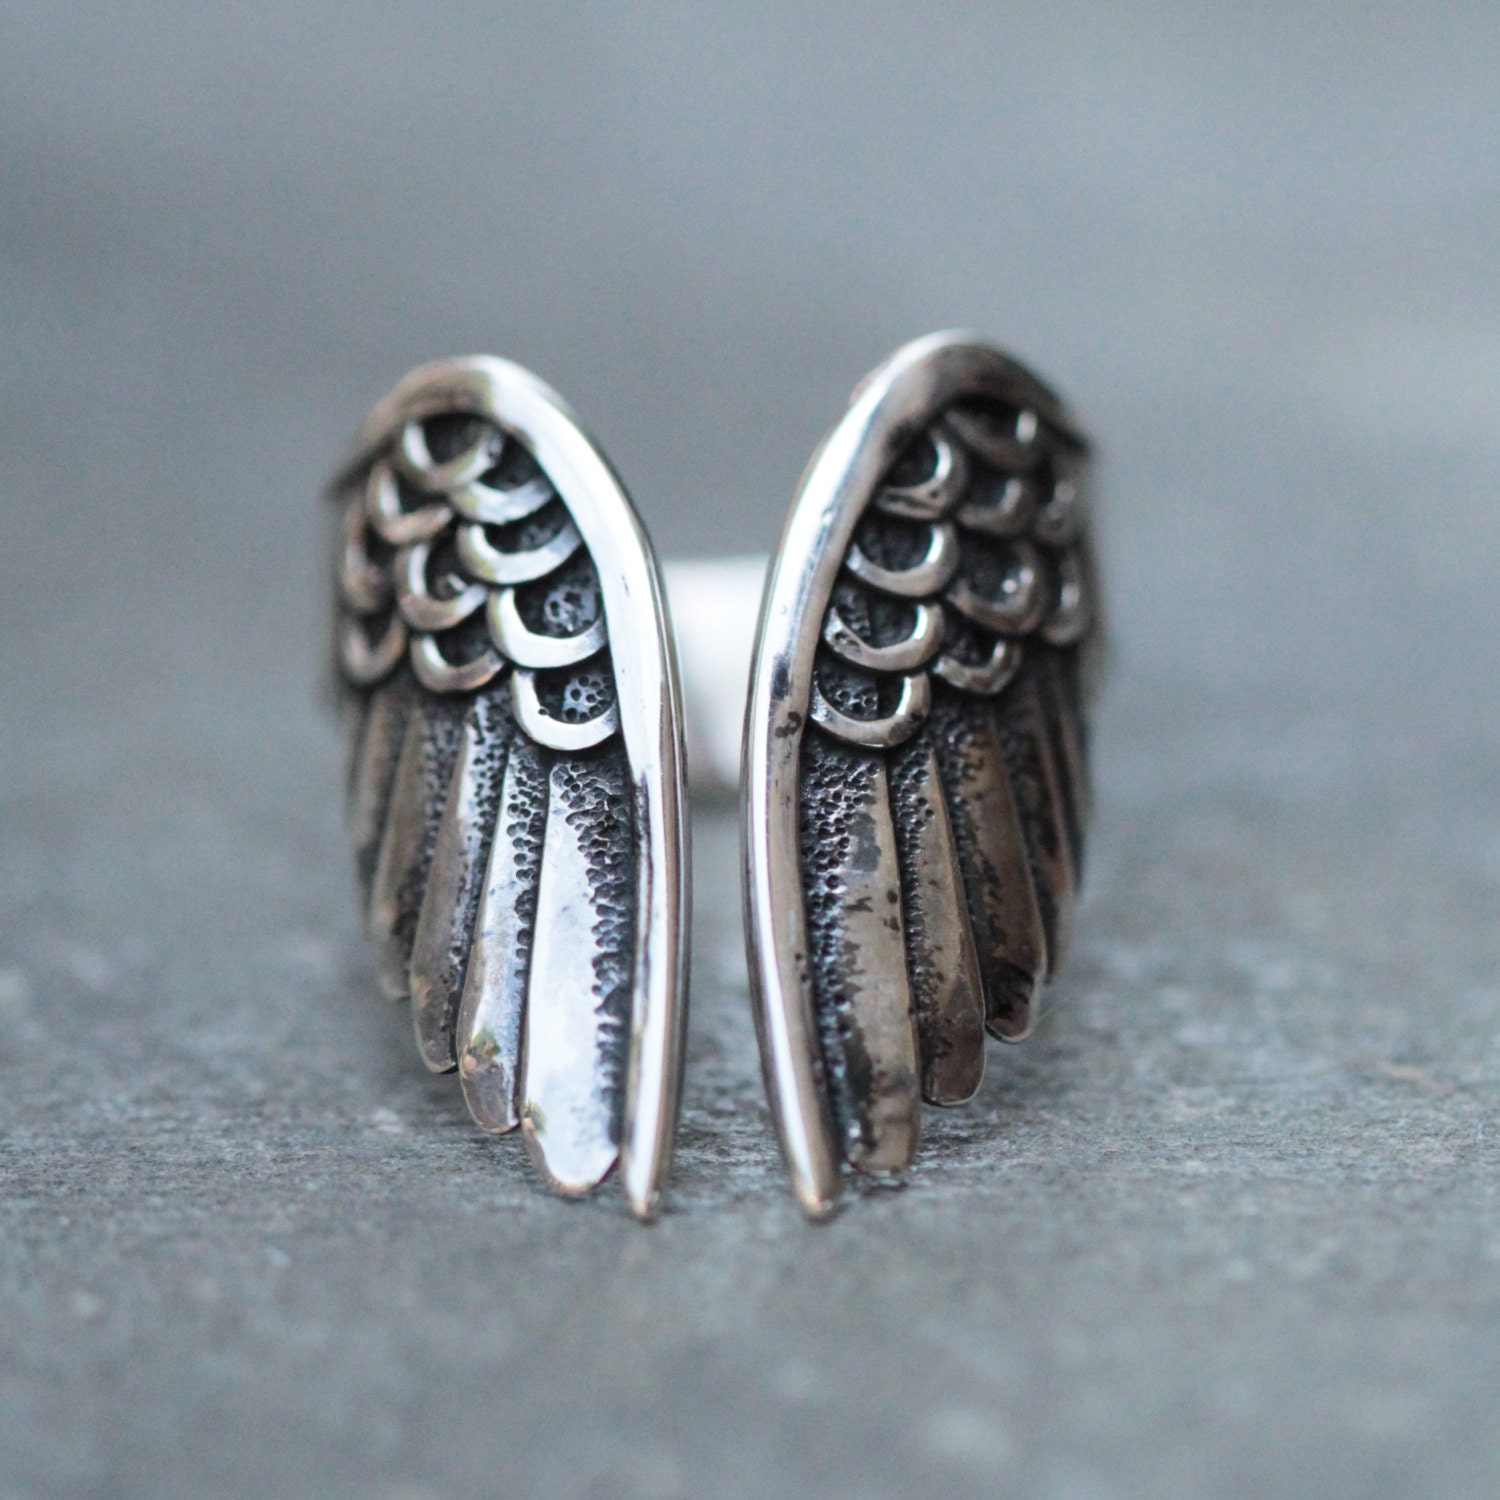 korean rings dsjqvf angel uniuqe arcane link couple ring i wings cute cupid